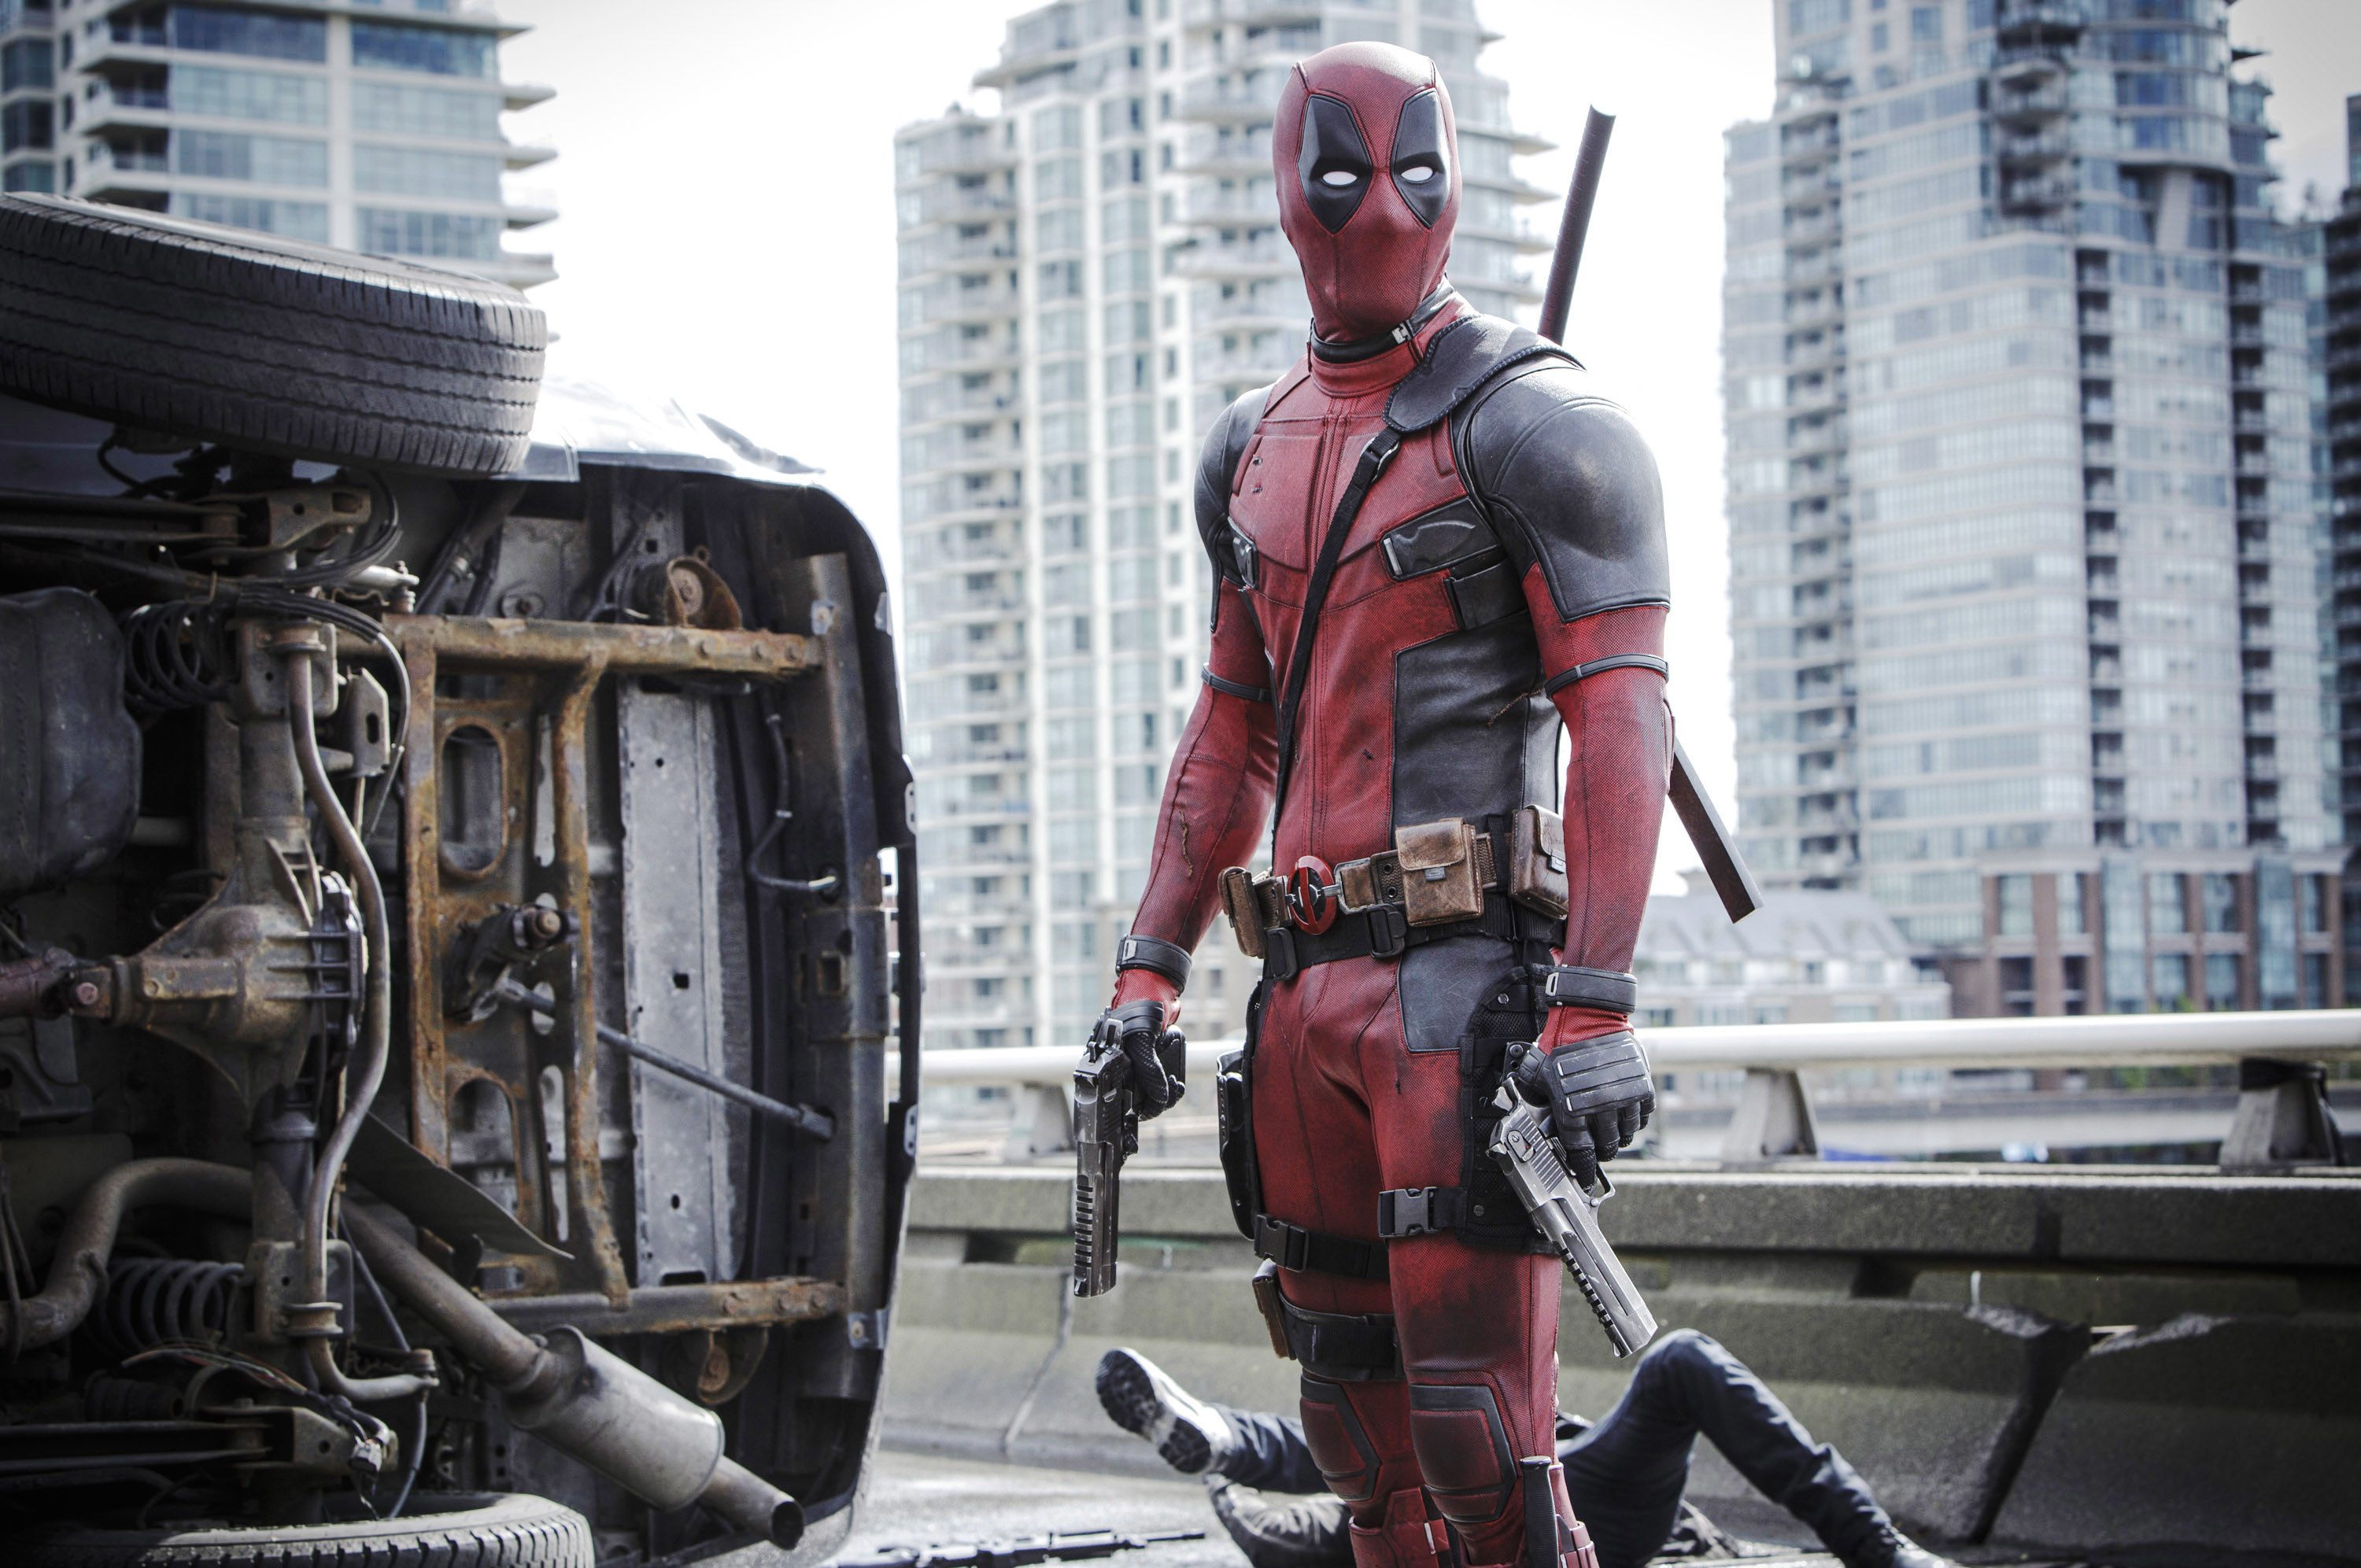 Ryan Reynolds as Deadpool in a skin-tight red and black suit